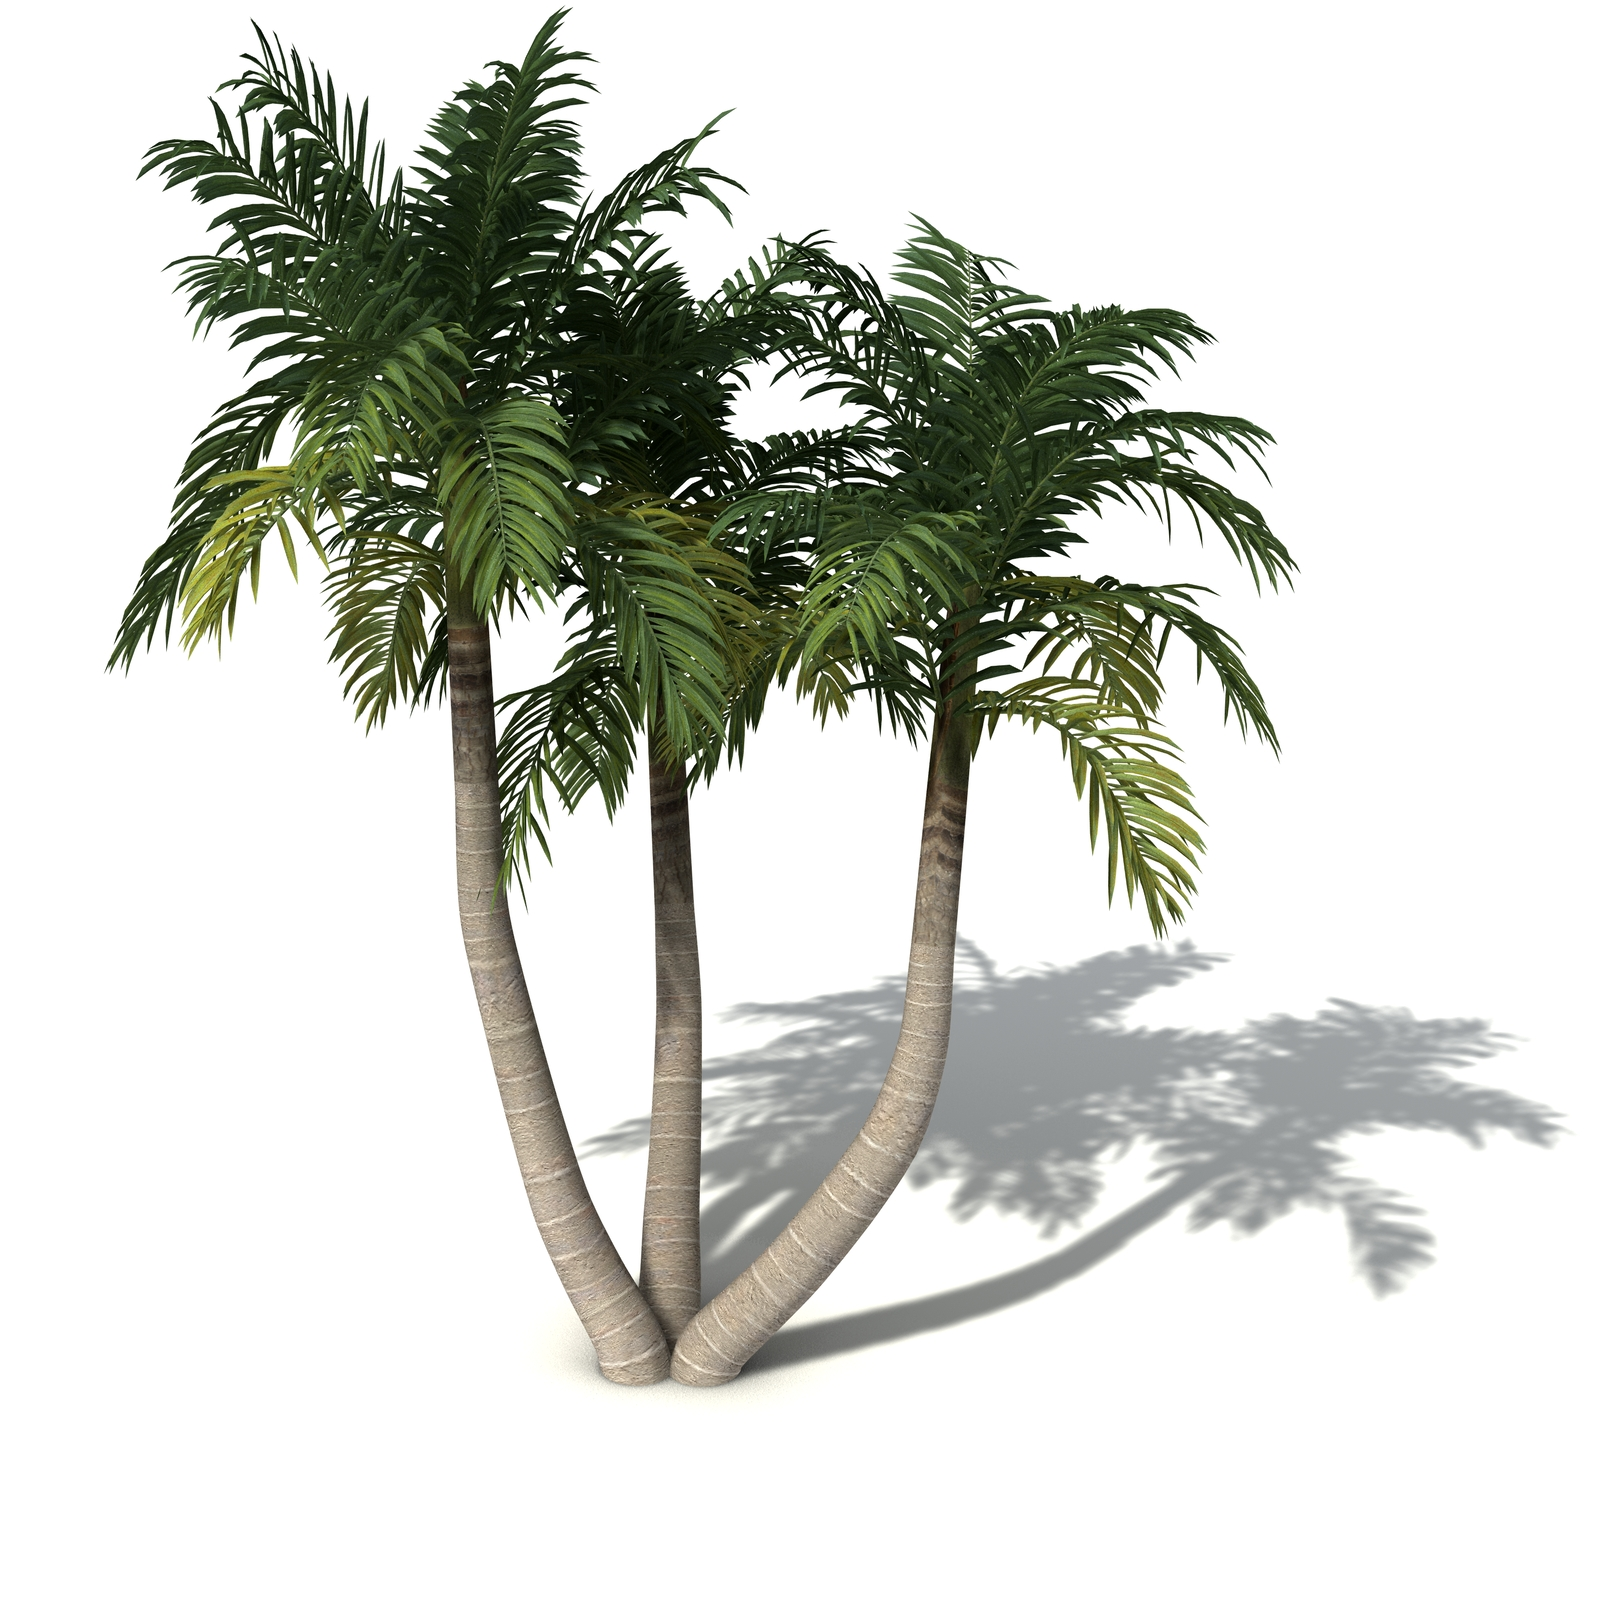 Palm Tree Trio 160.44 Kb